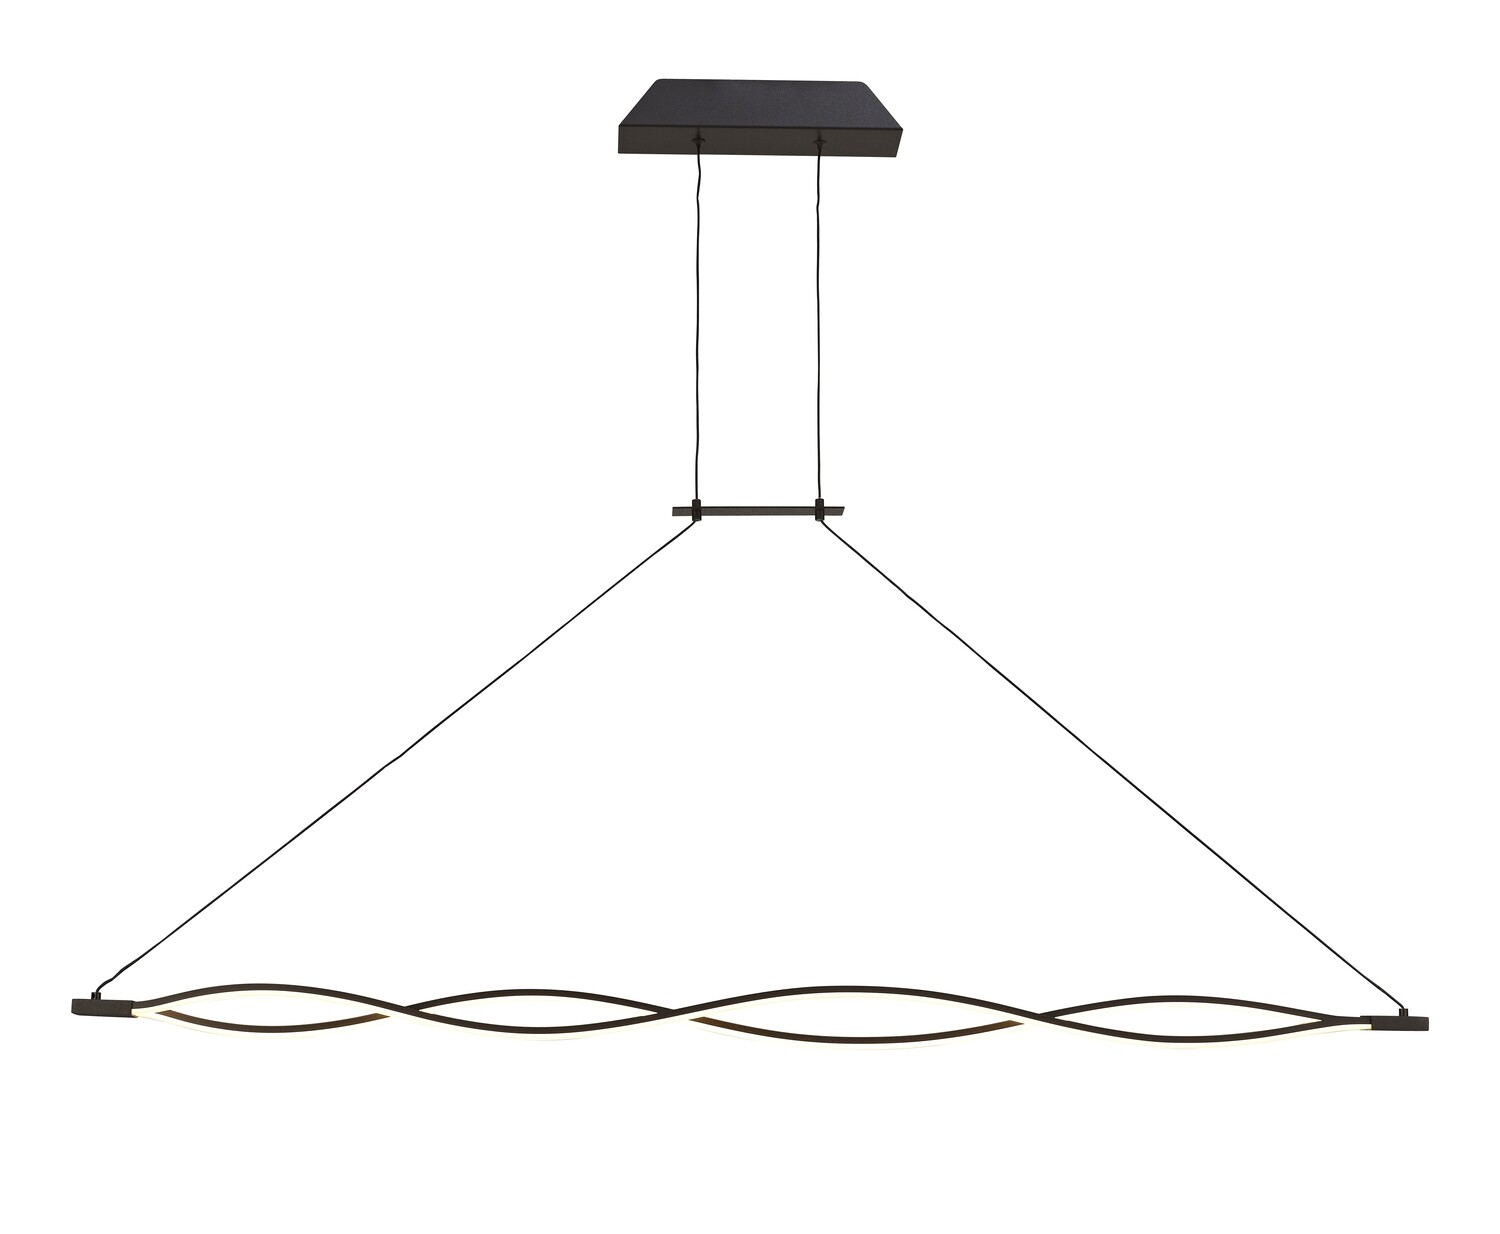 Sahara XL Linear Pendant 42W LED 2800K, 3400lm, Frosted Acrylic, Brown Oxide